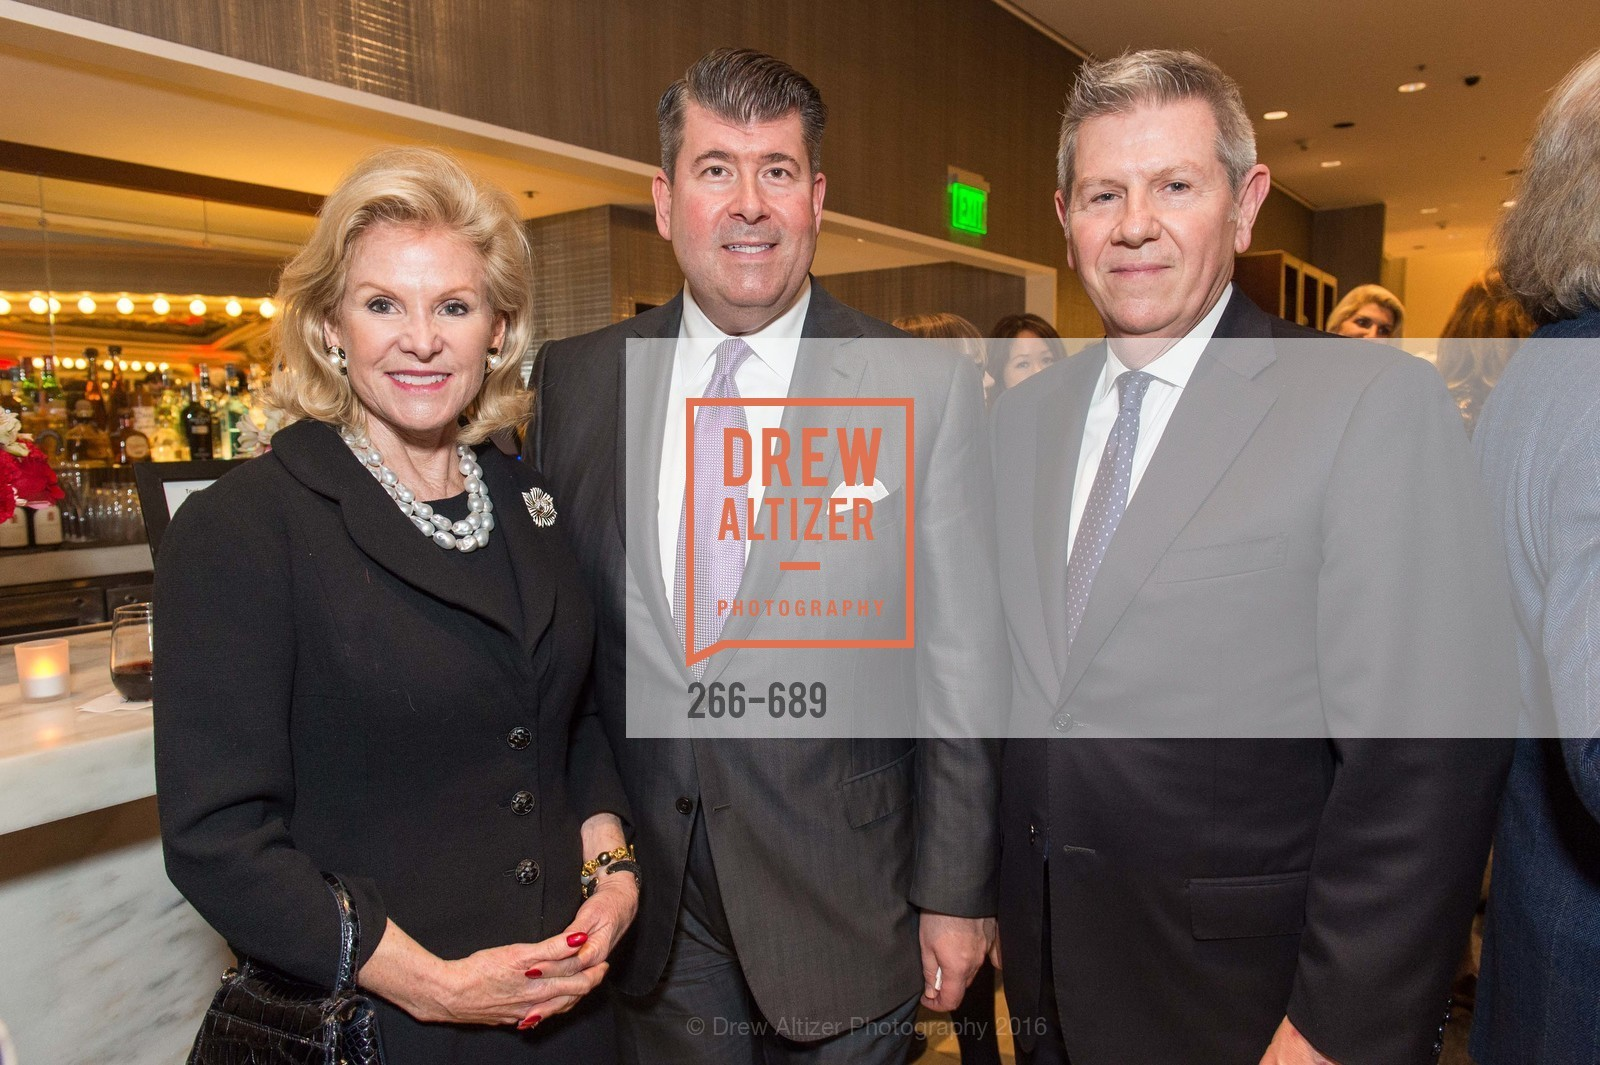 Dede Wilsey, Alan Morrell, Richard Benefield, Oscar de la Renta Cocktail Party with Boaz Mazor, The Rotunda Restaurant, January 19th, 2016,Drew Altizer, Drew Altizer Photography, full-service event agency, private events, San Francisco photographer, photographer California